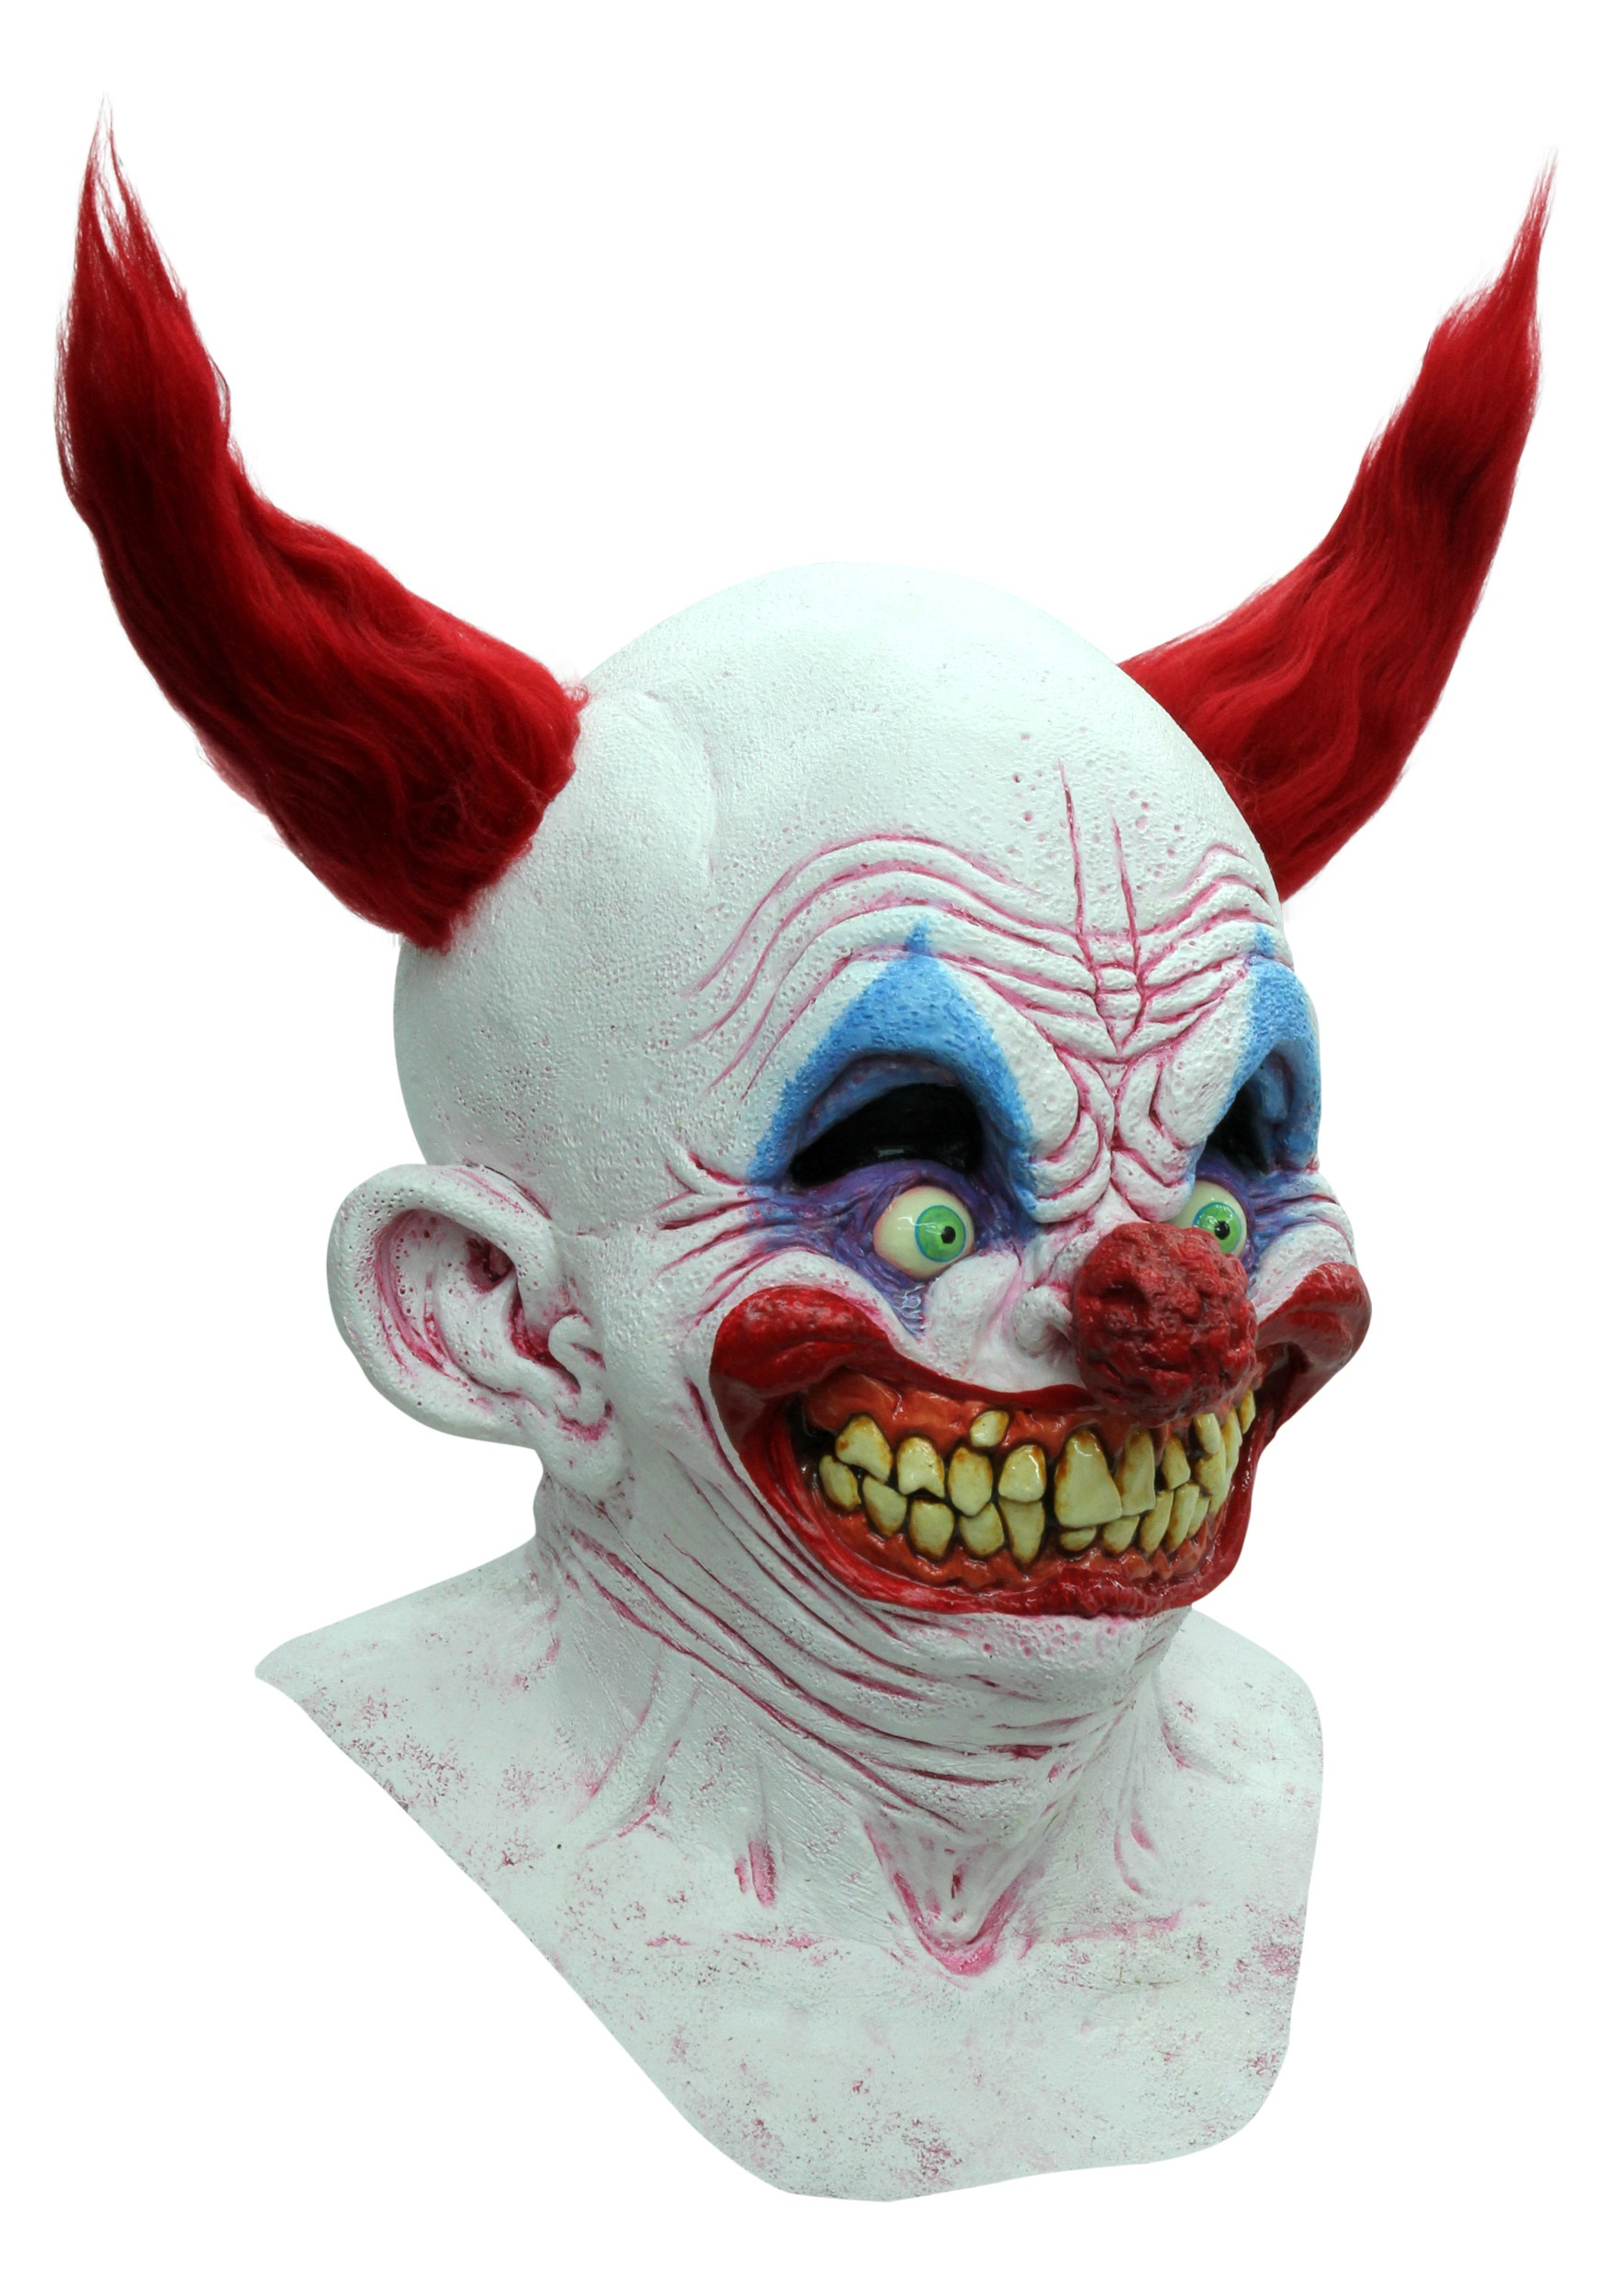 Clown Mask - Bing images